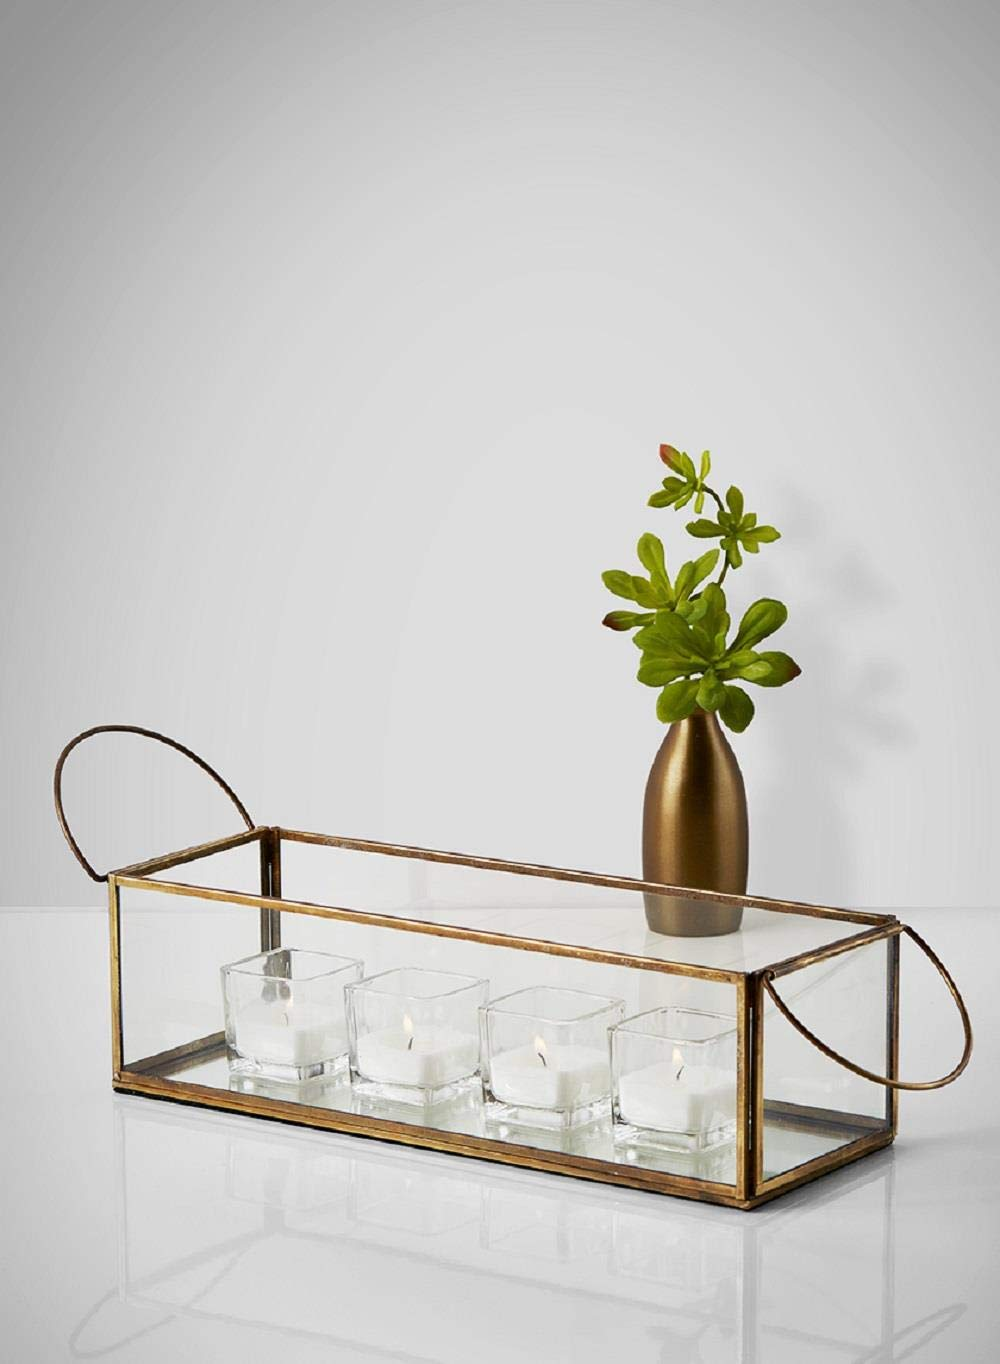 Serene Spaces Living Gold Hexagon Glass Tea Light Holder Measures 4 inches Tall Small Size